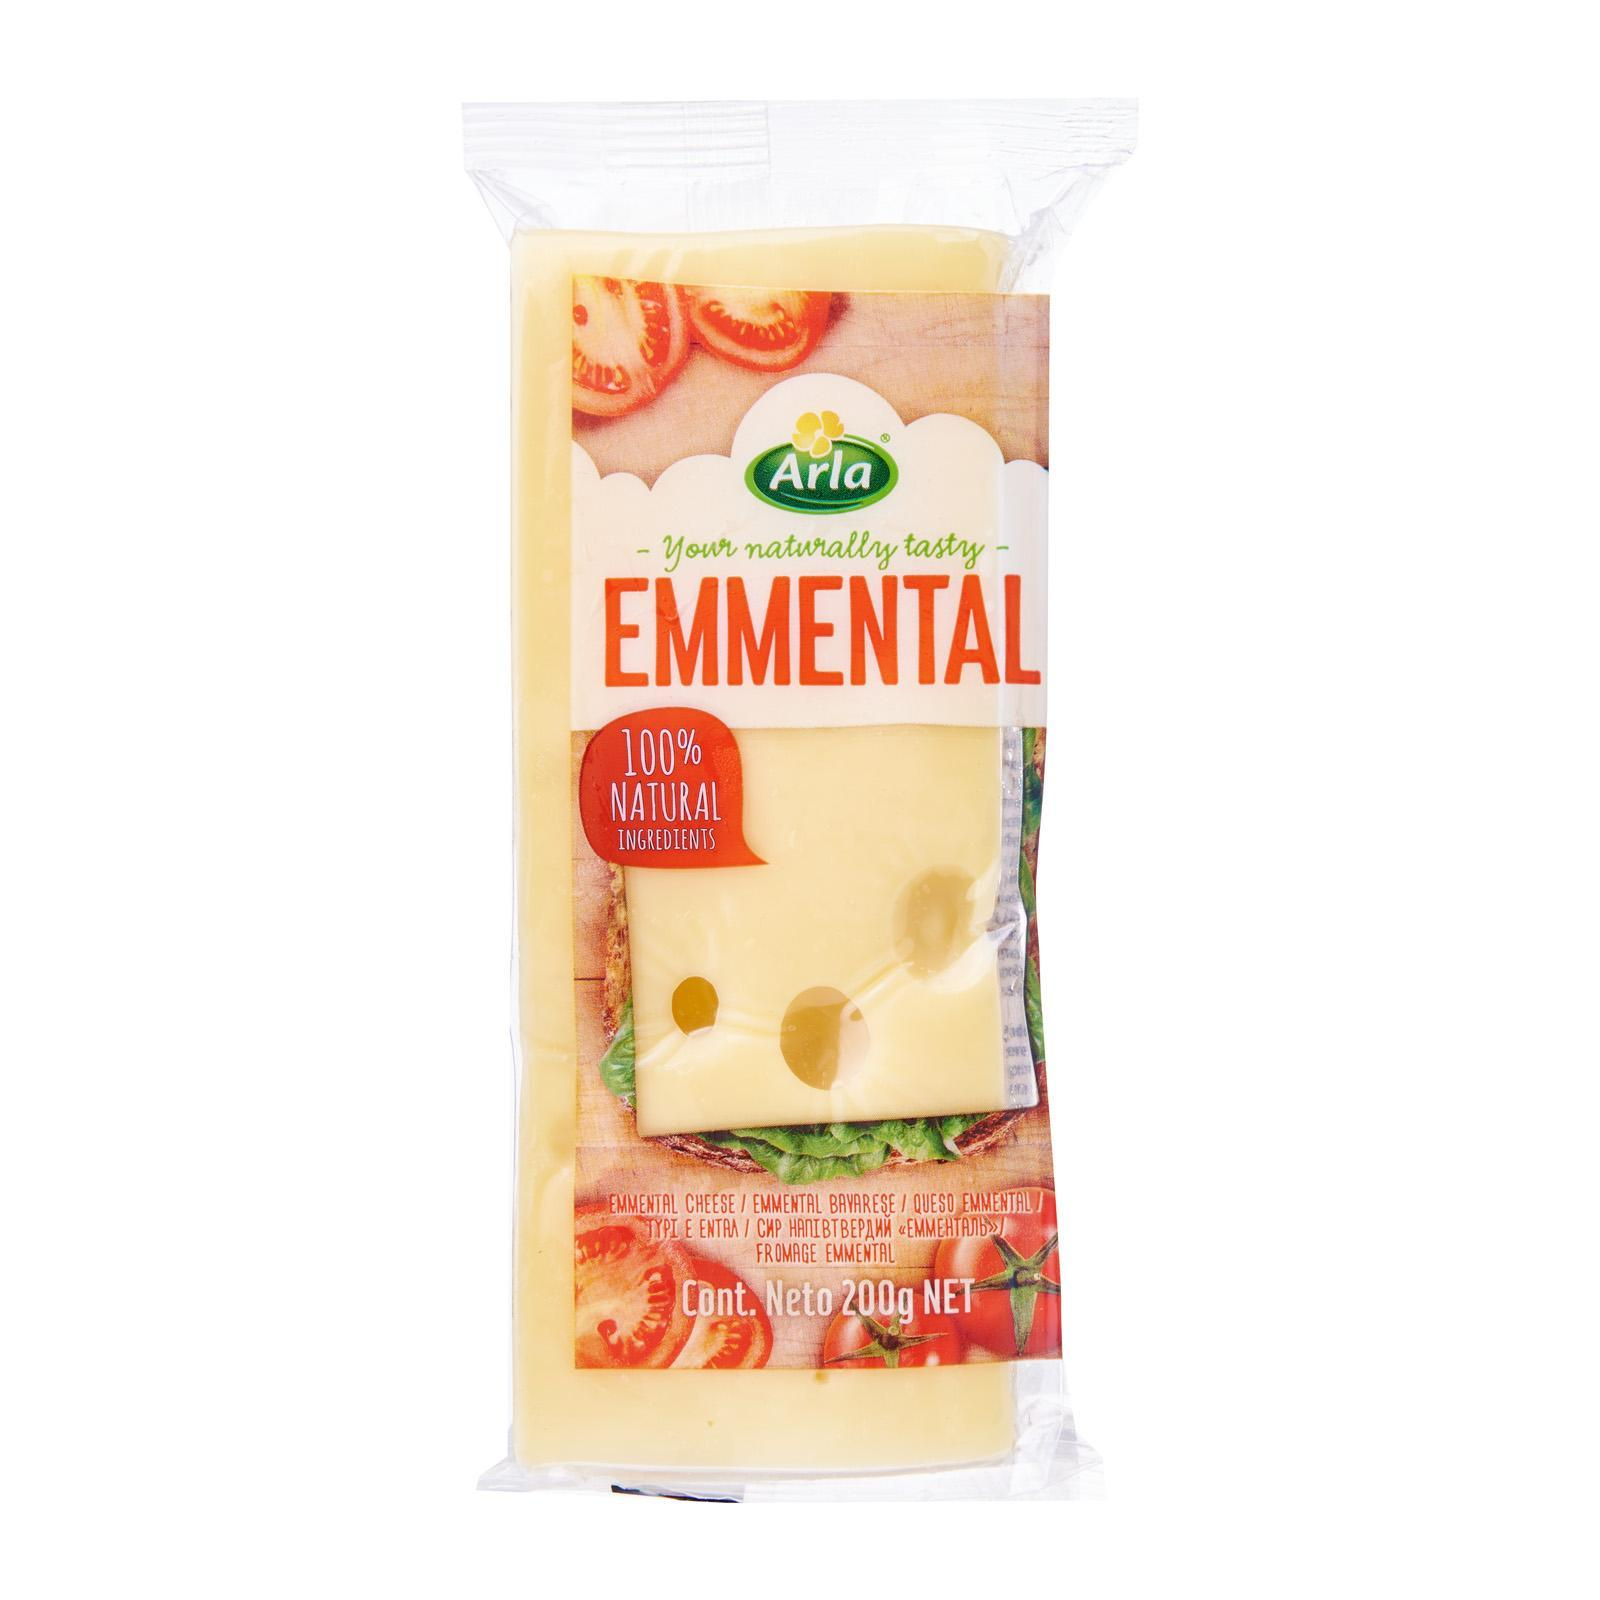 Arla Natural Emmental Block Cheese